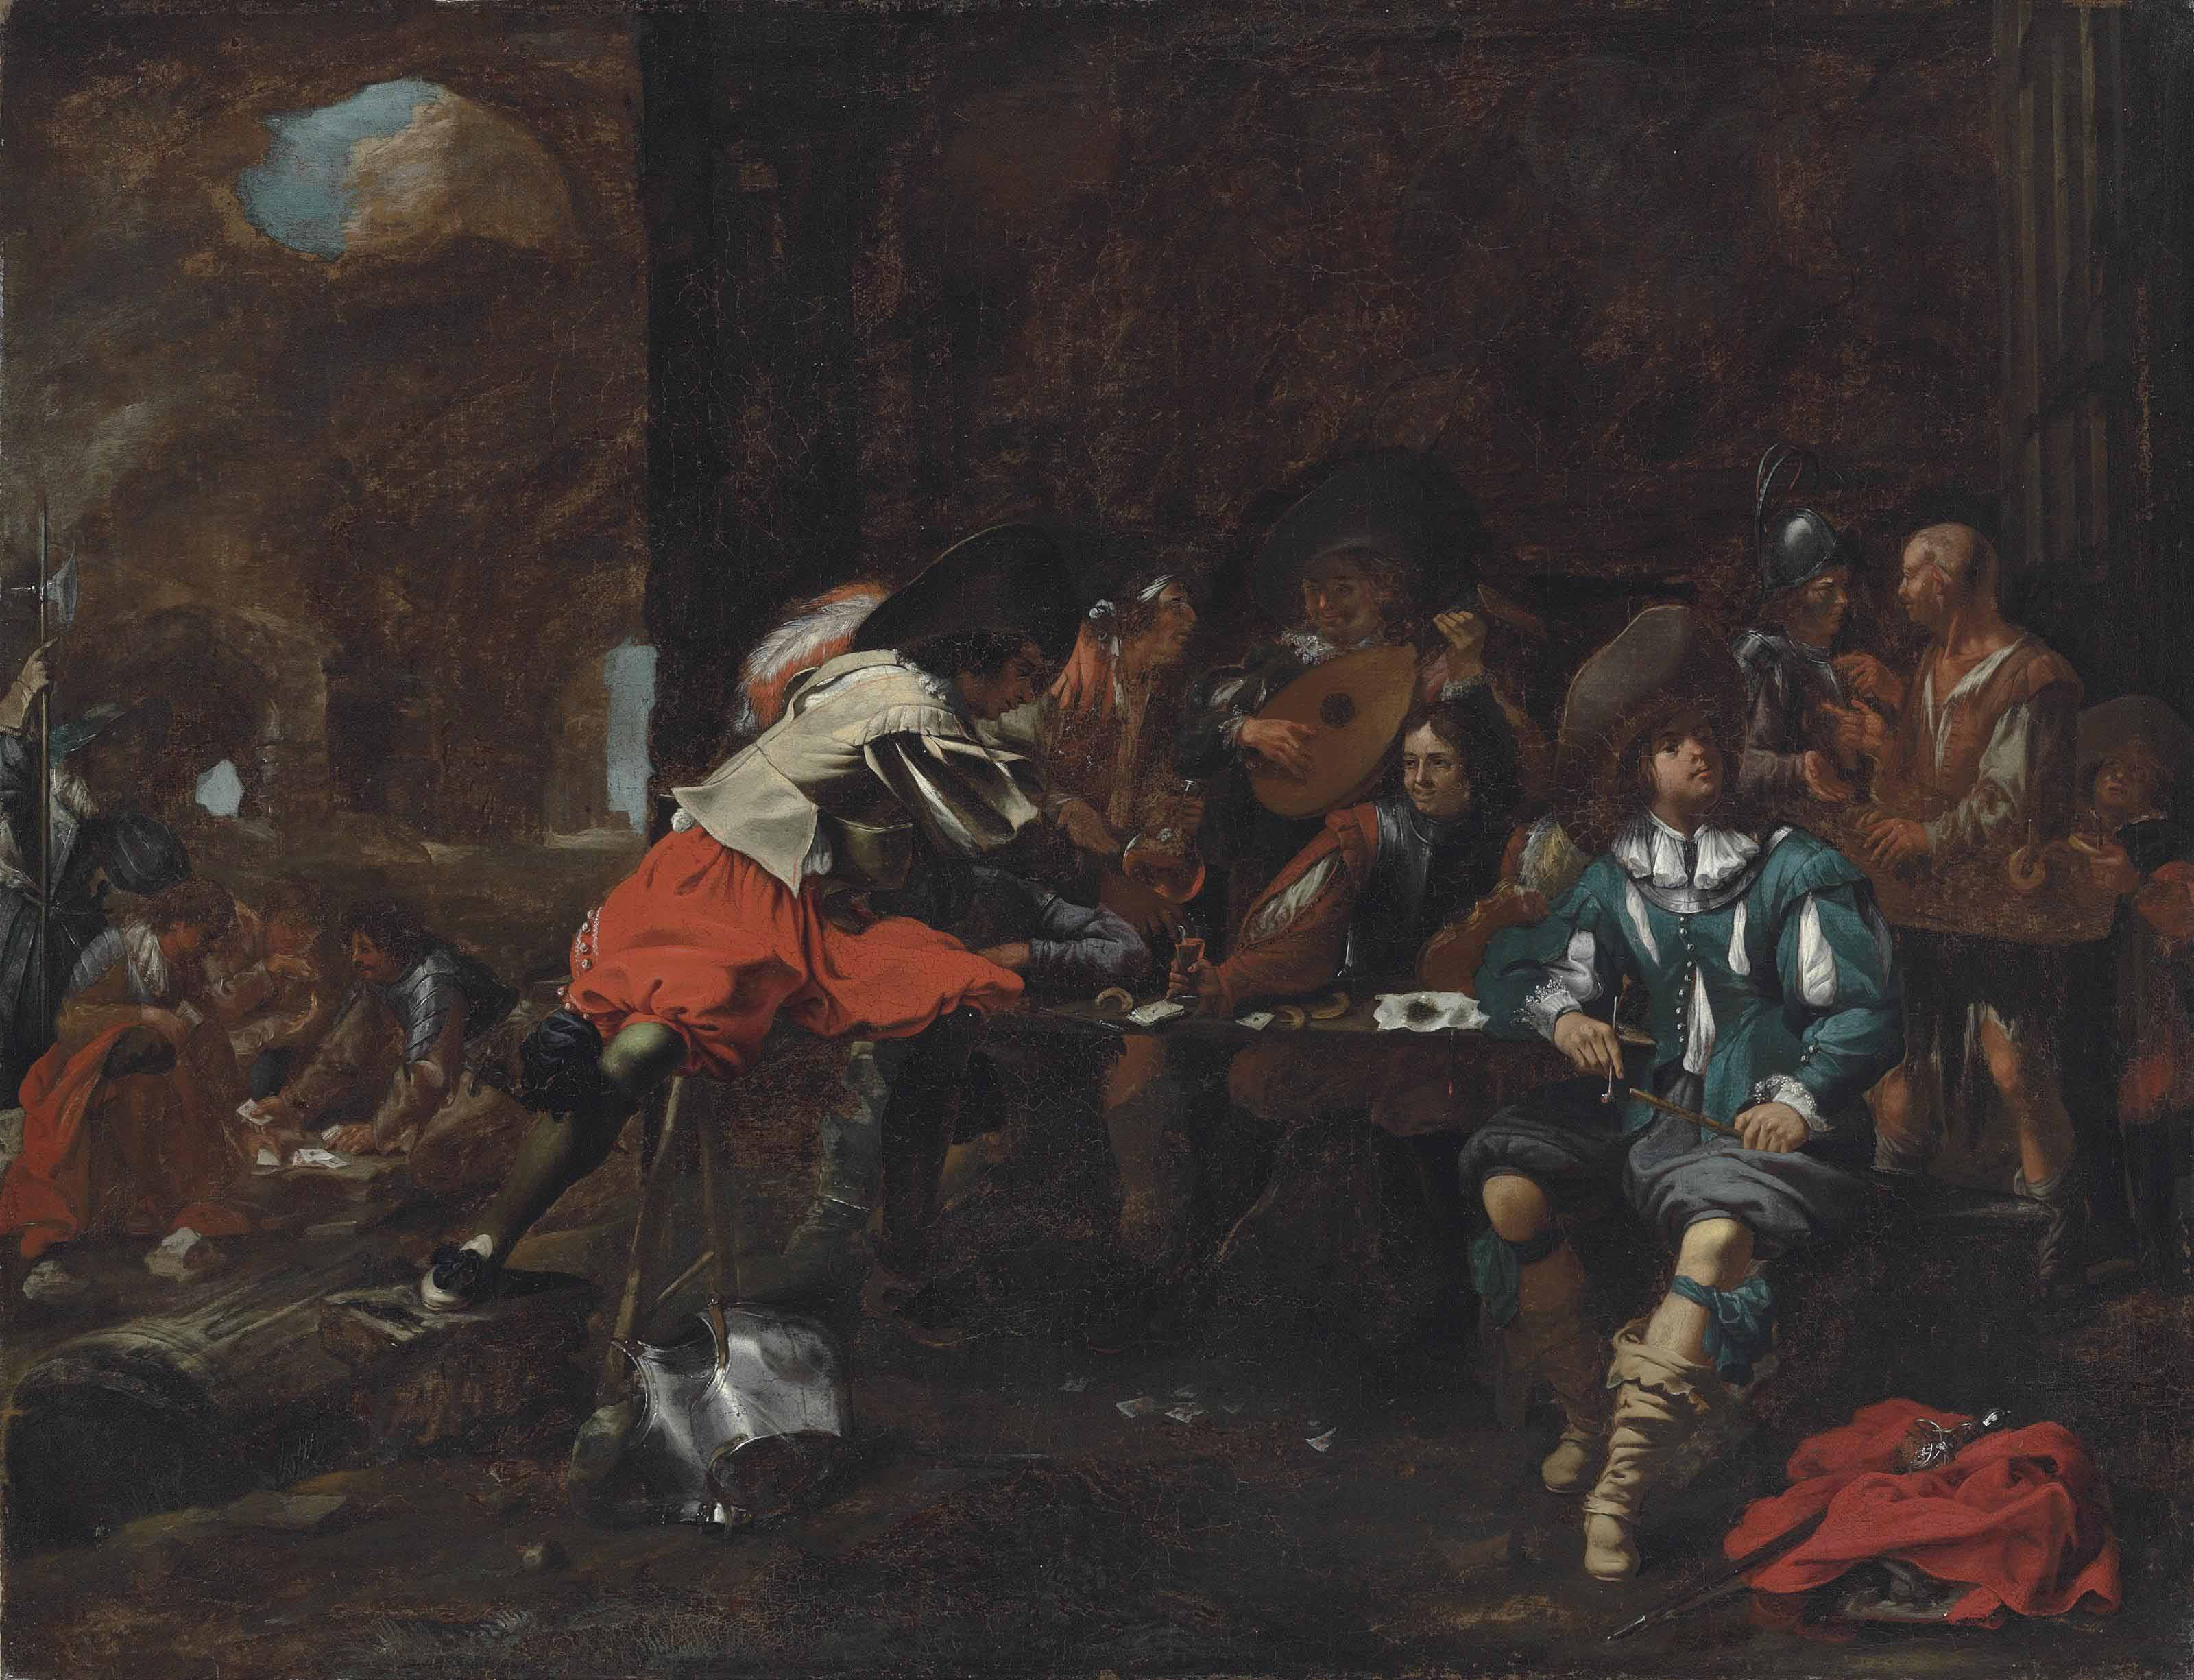 Soldiers and elegant figures playing cards and making music in a ruined classical building